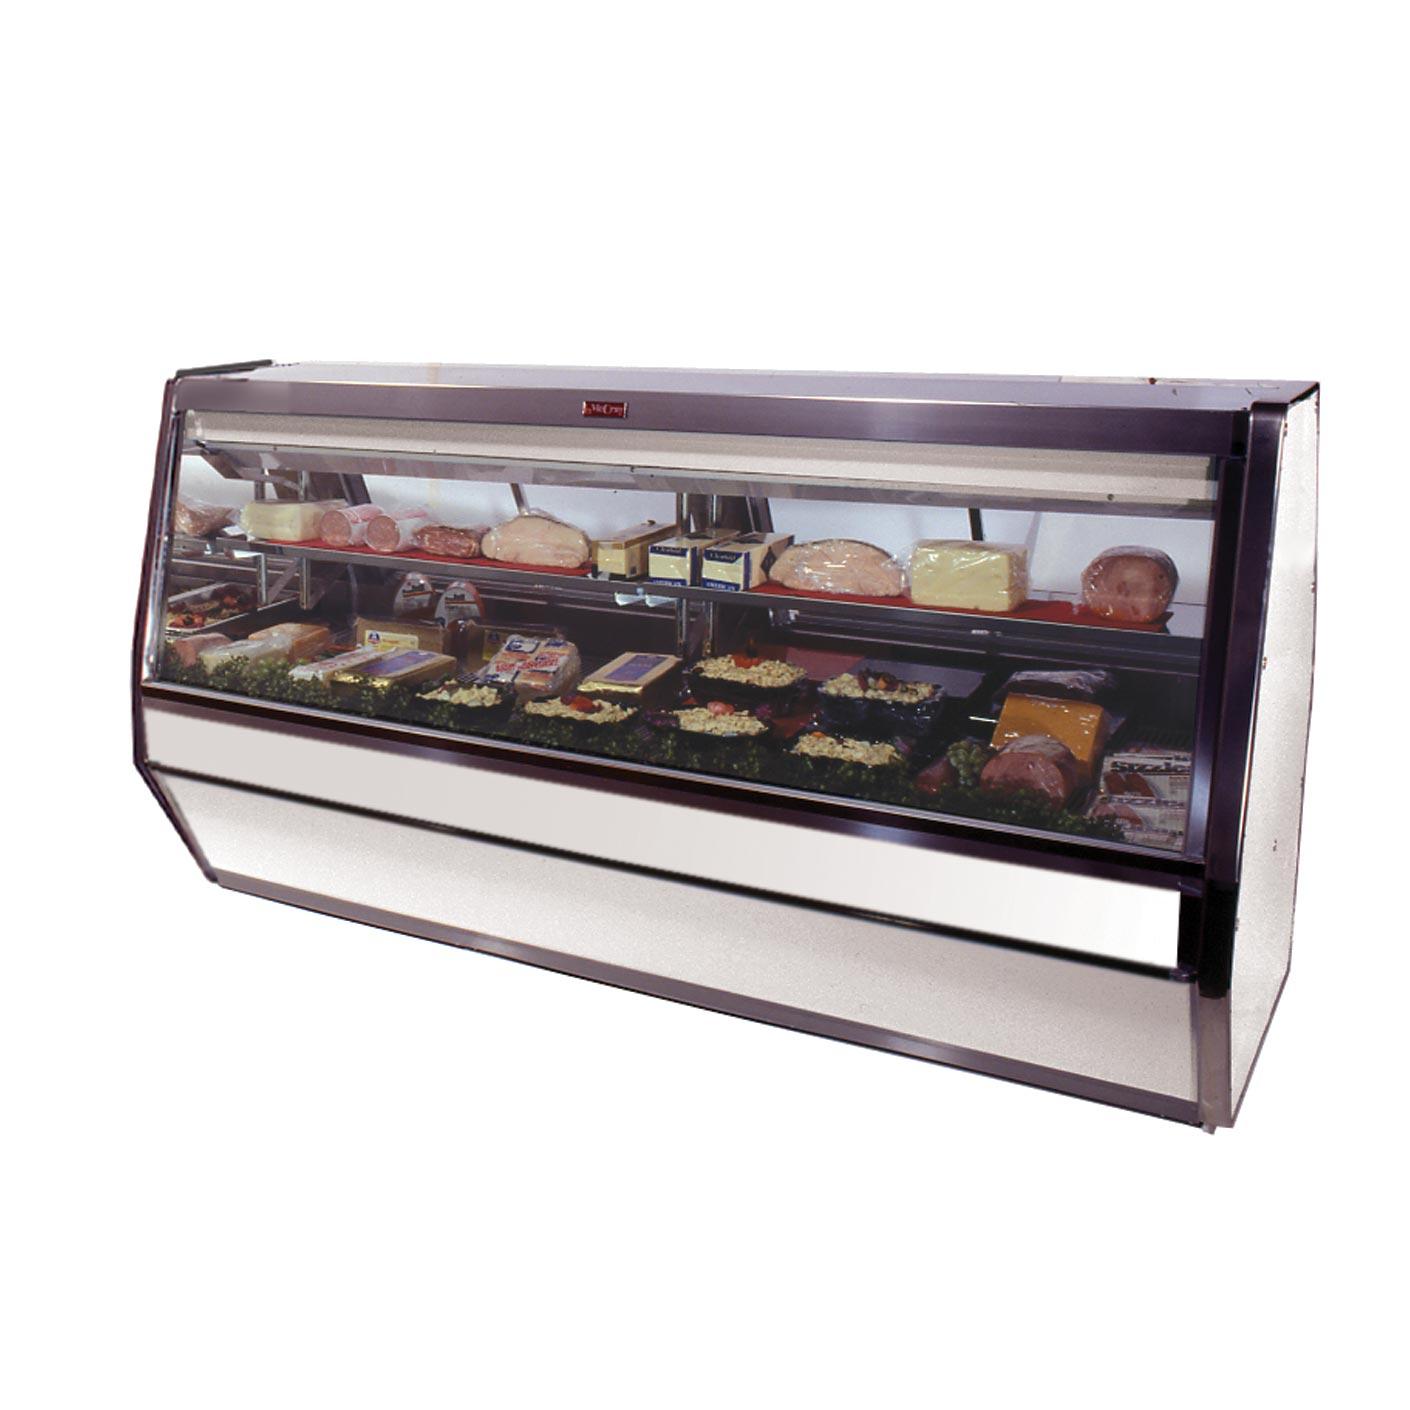 Howard-McCray R-CDS40E-12-S-LED display case, refrigerated deli